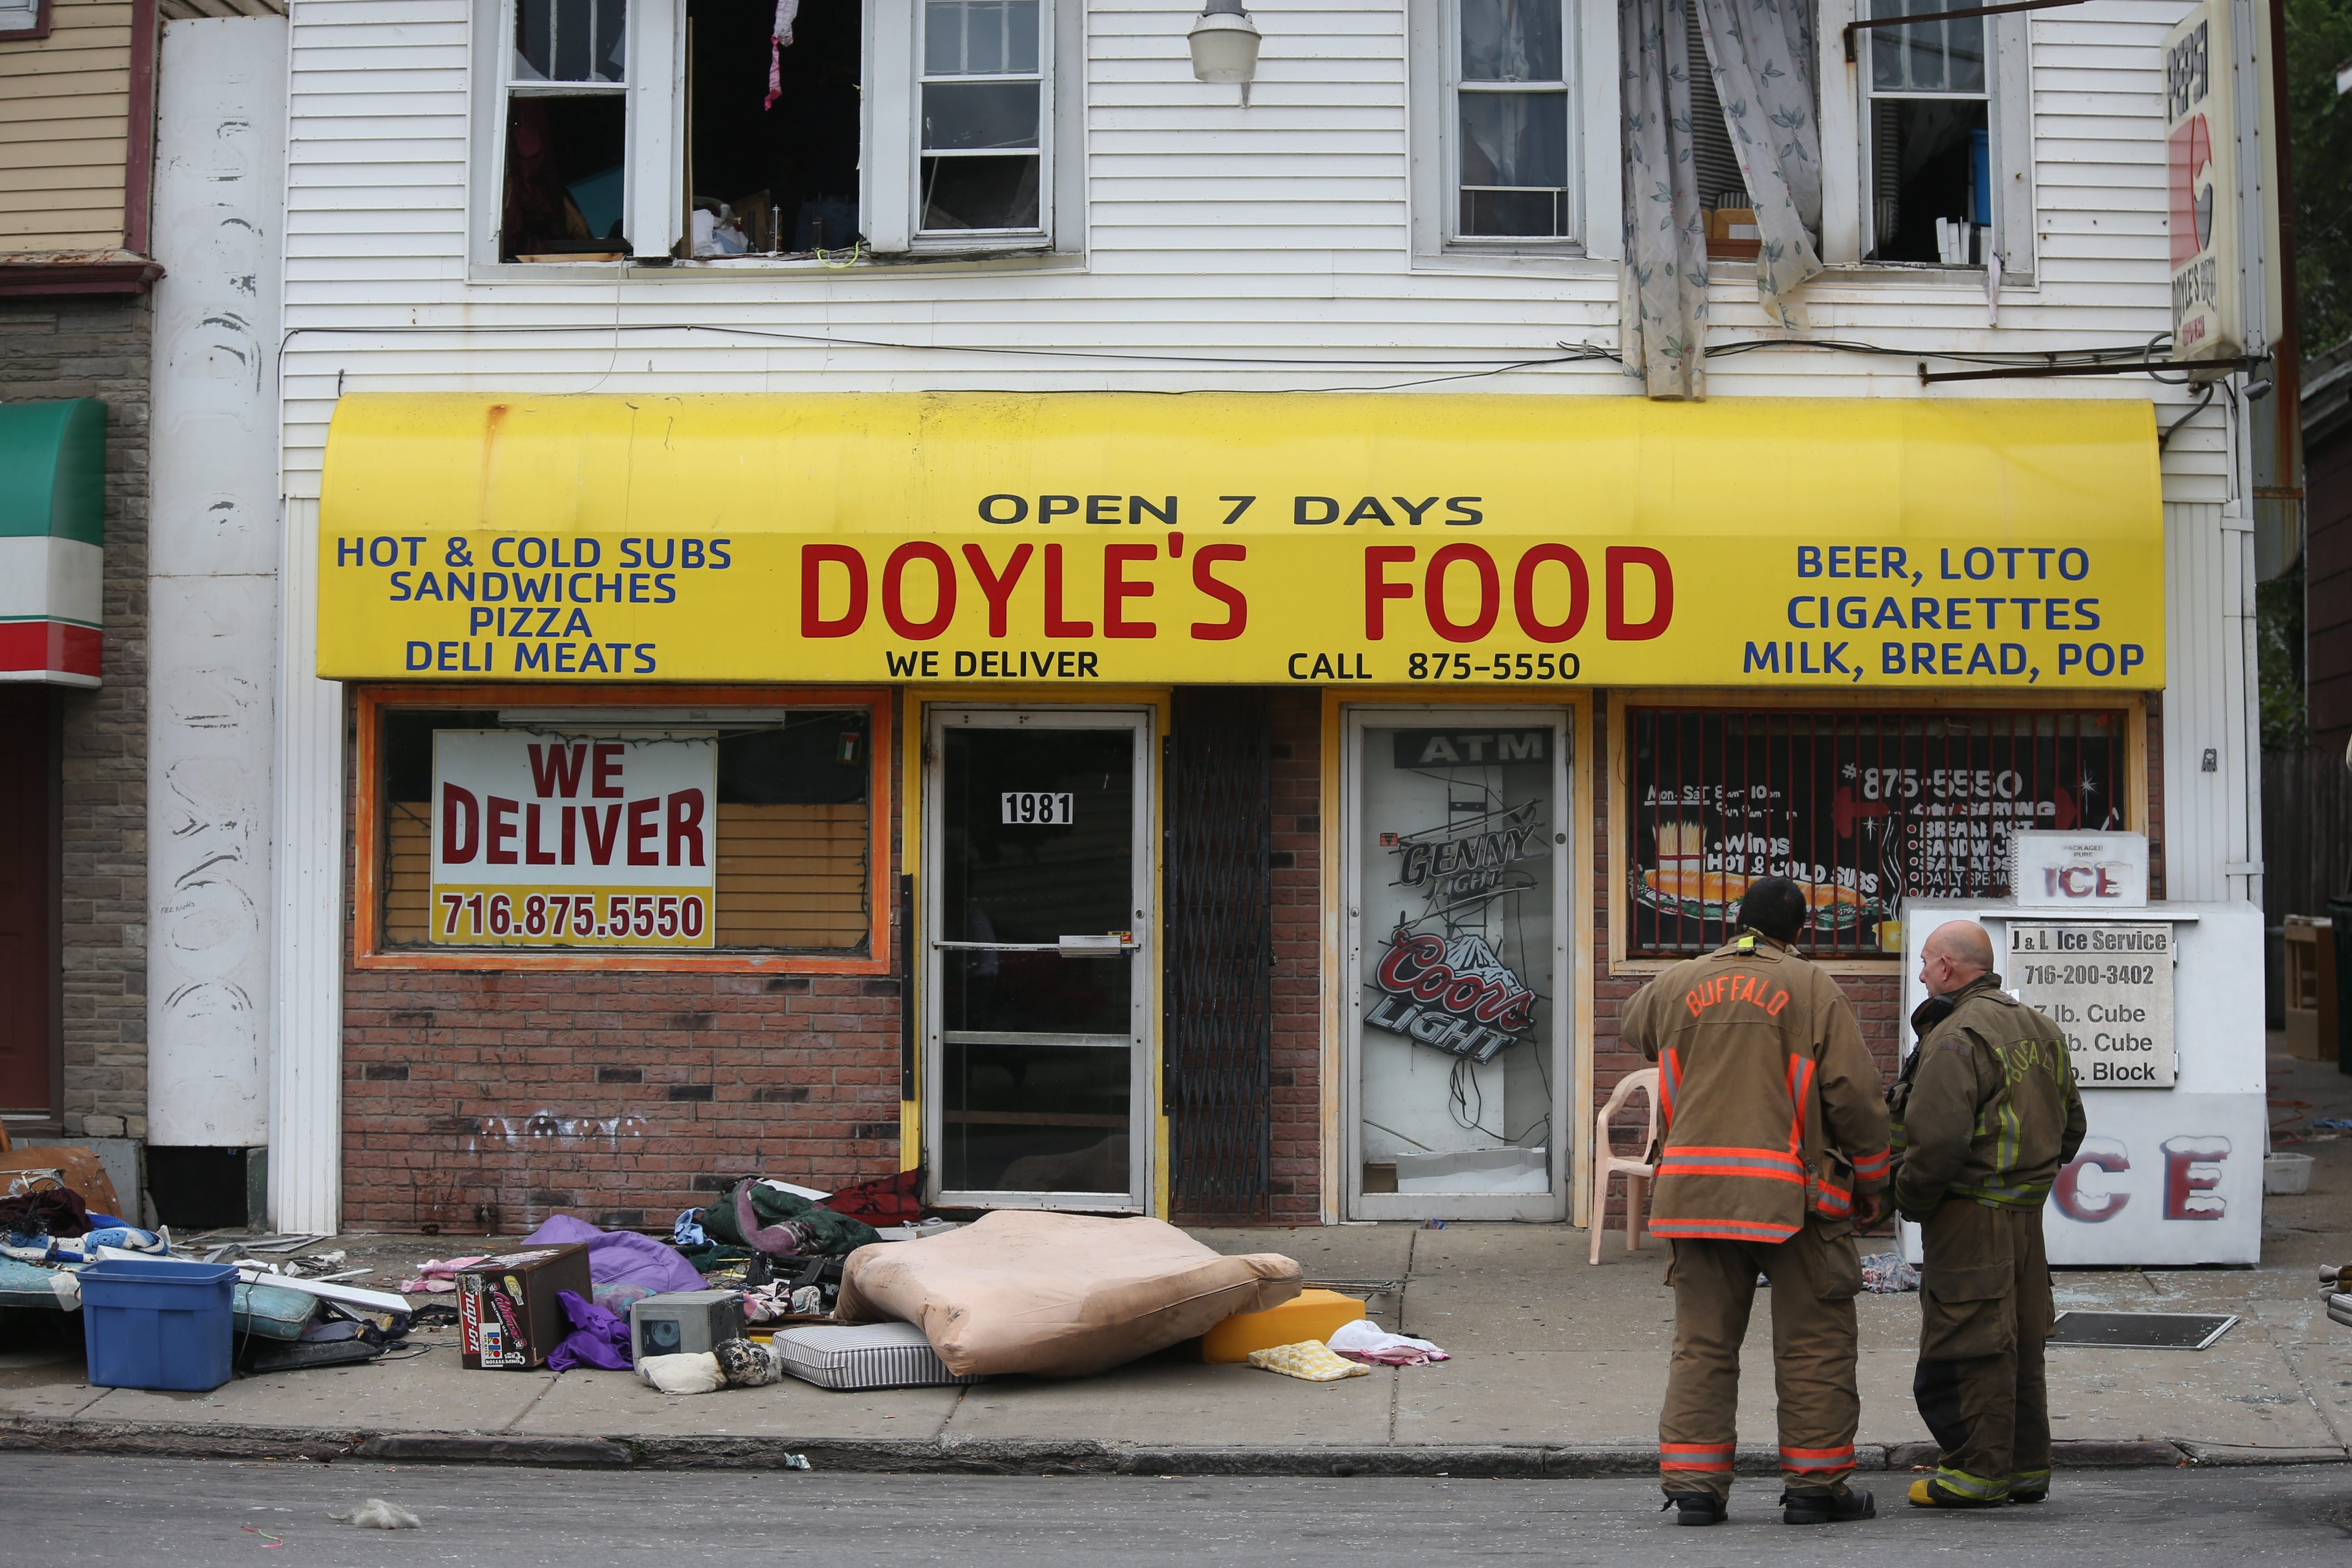 An explosion in the second-floor apartment above Doyle's Food on Monday brought firefighters to the scene.